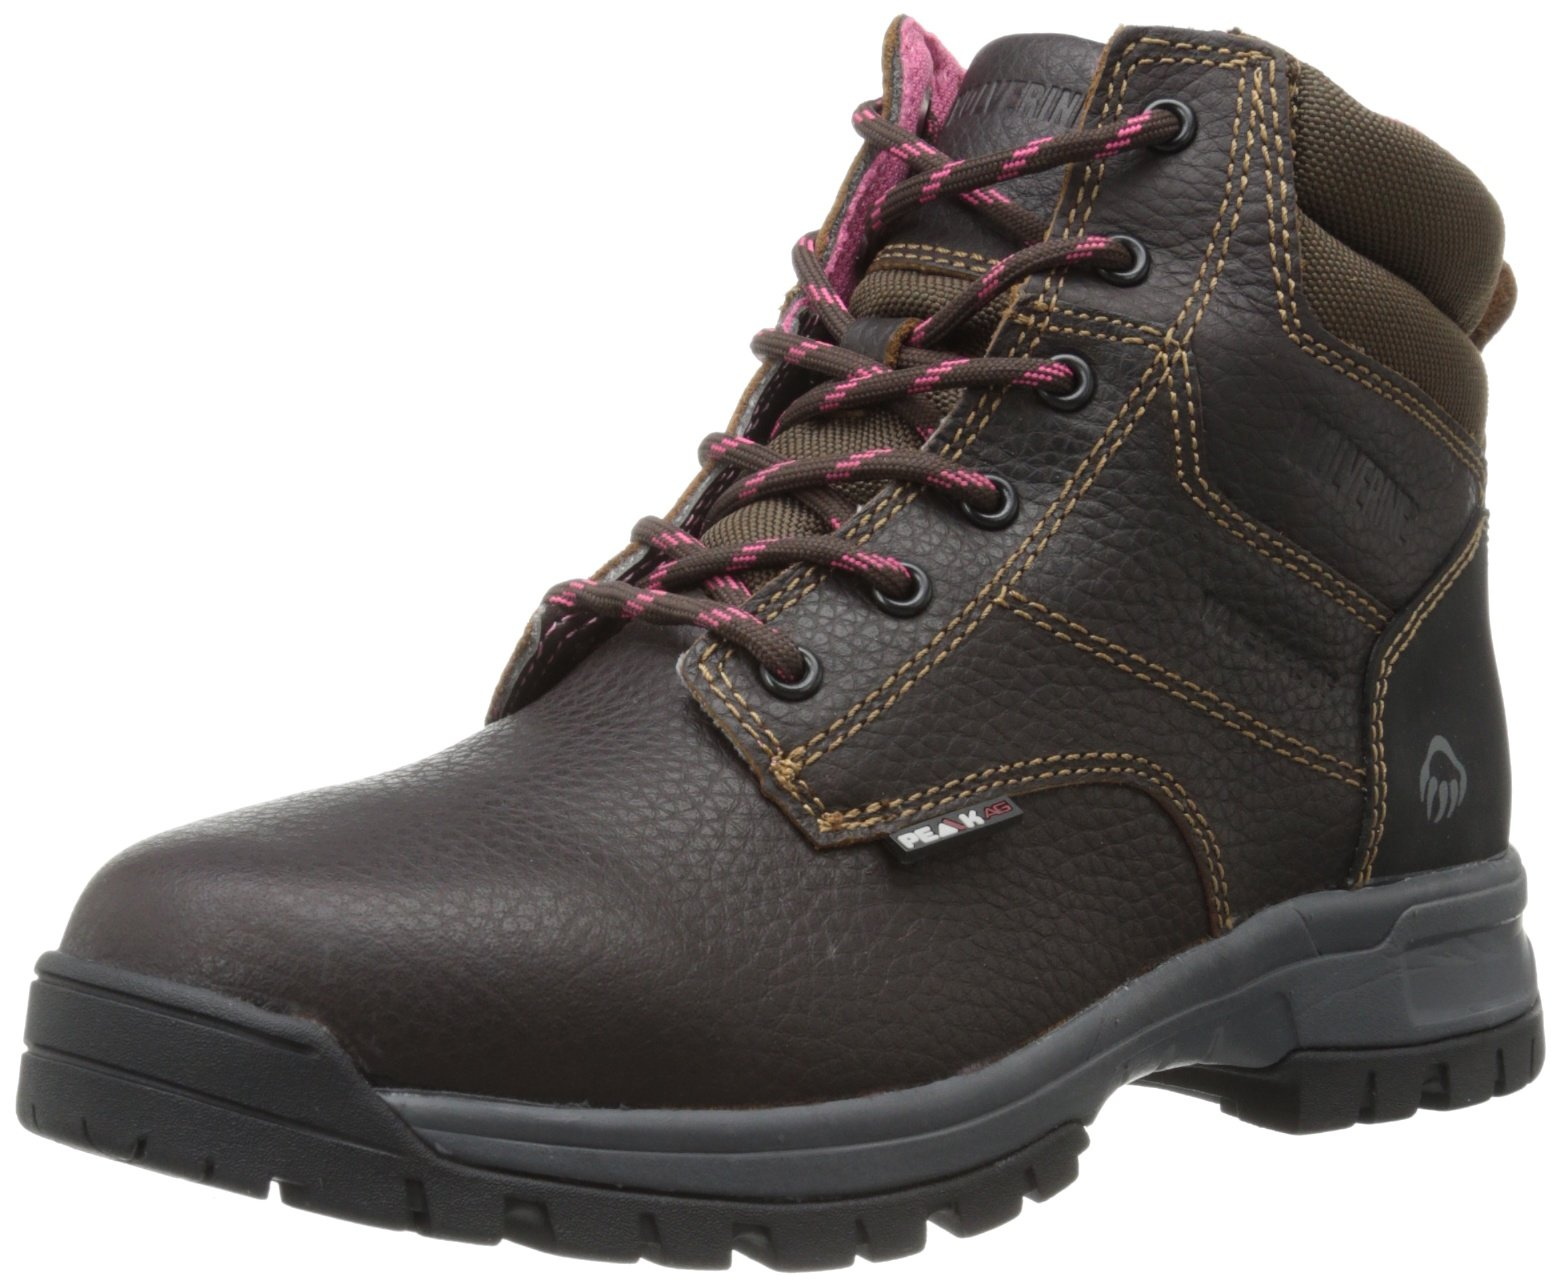 Wolverine Women's Piper Comp Safety Toe Boot,Brown,8 M US